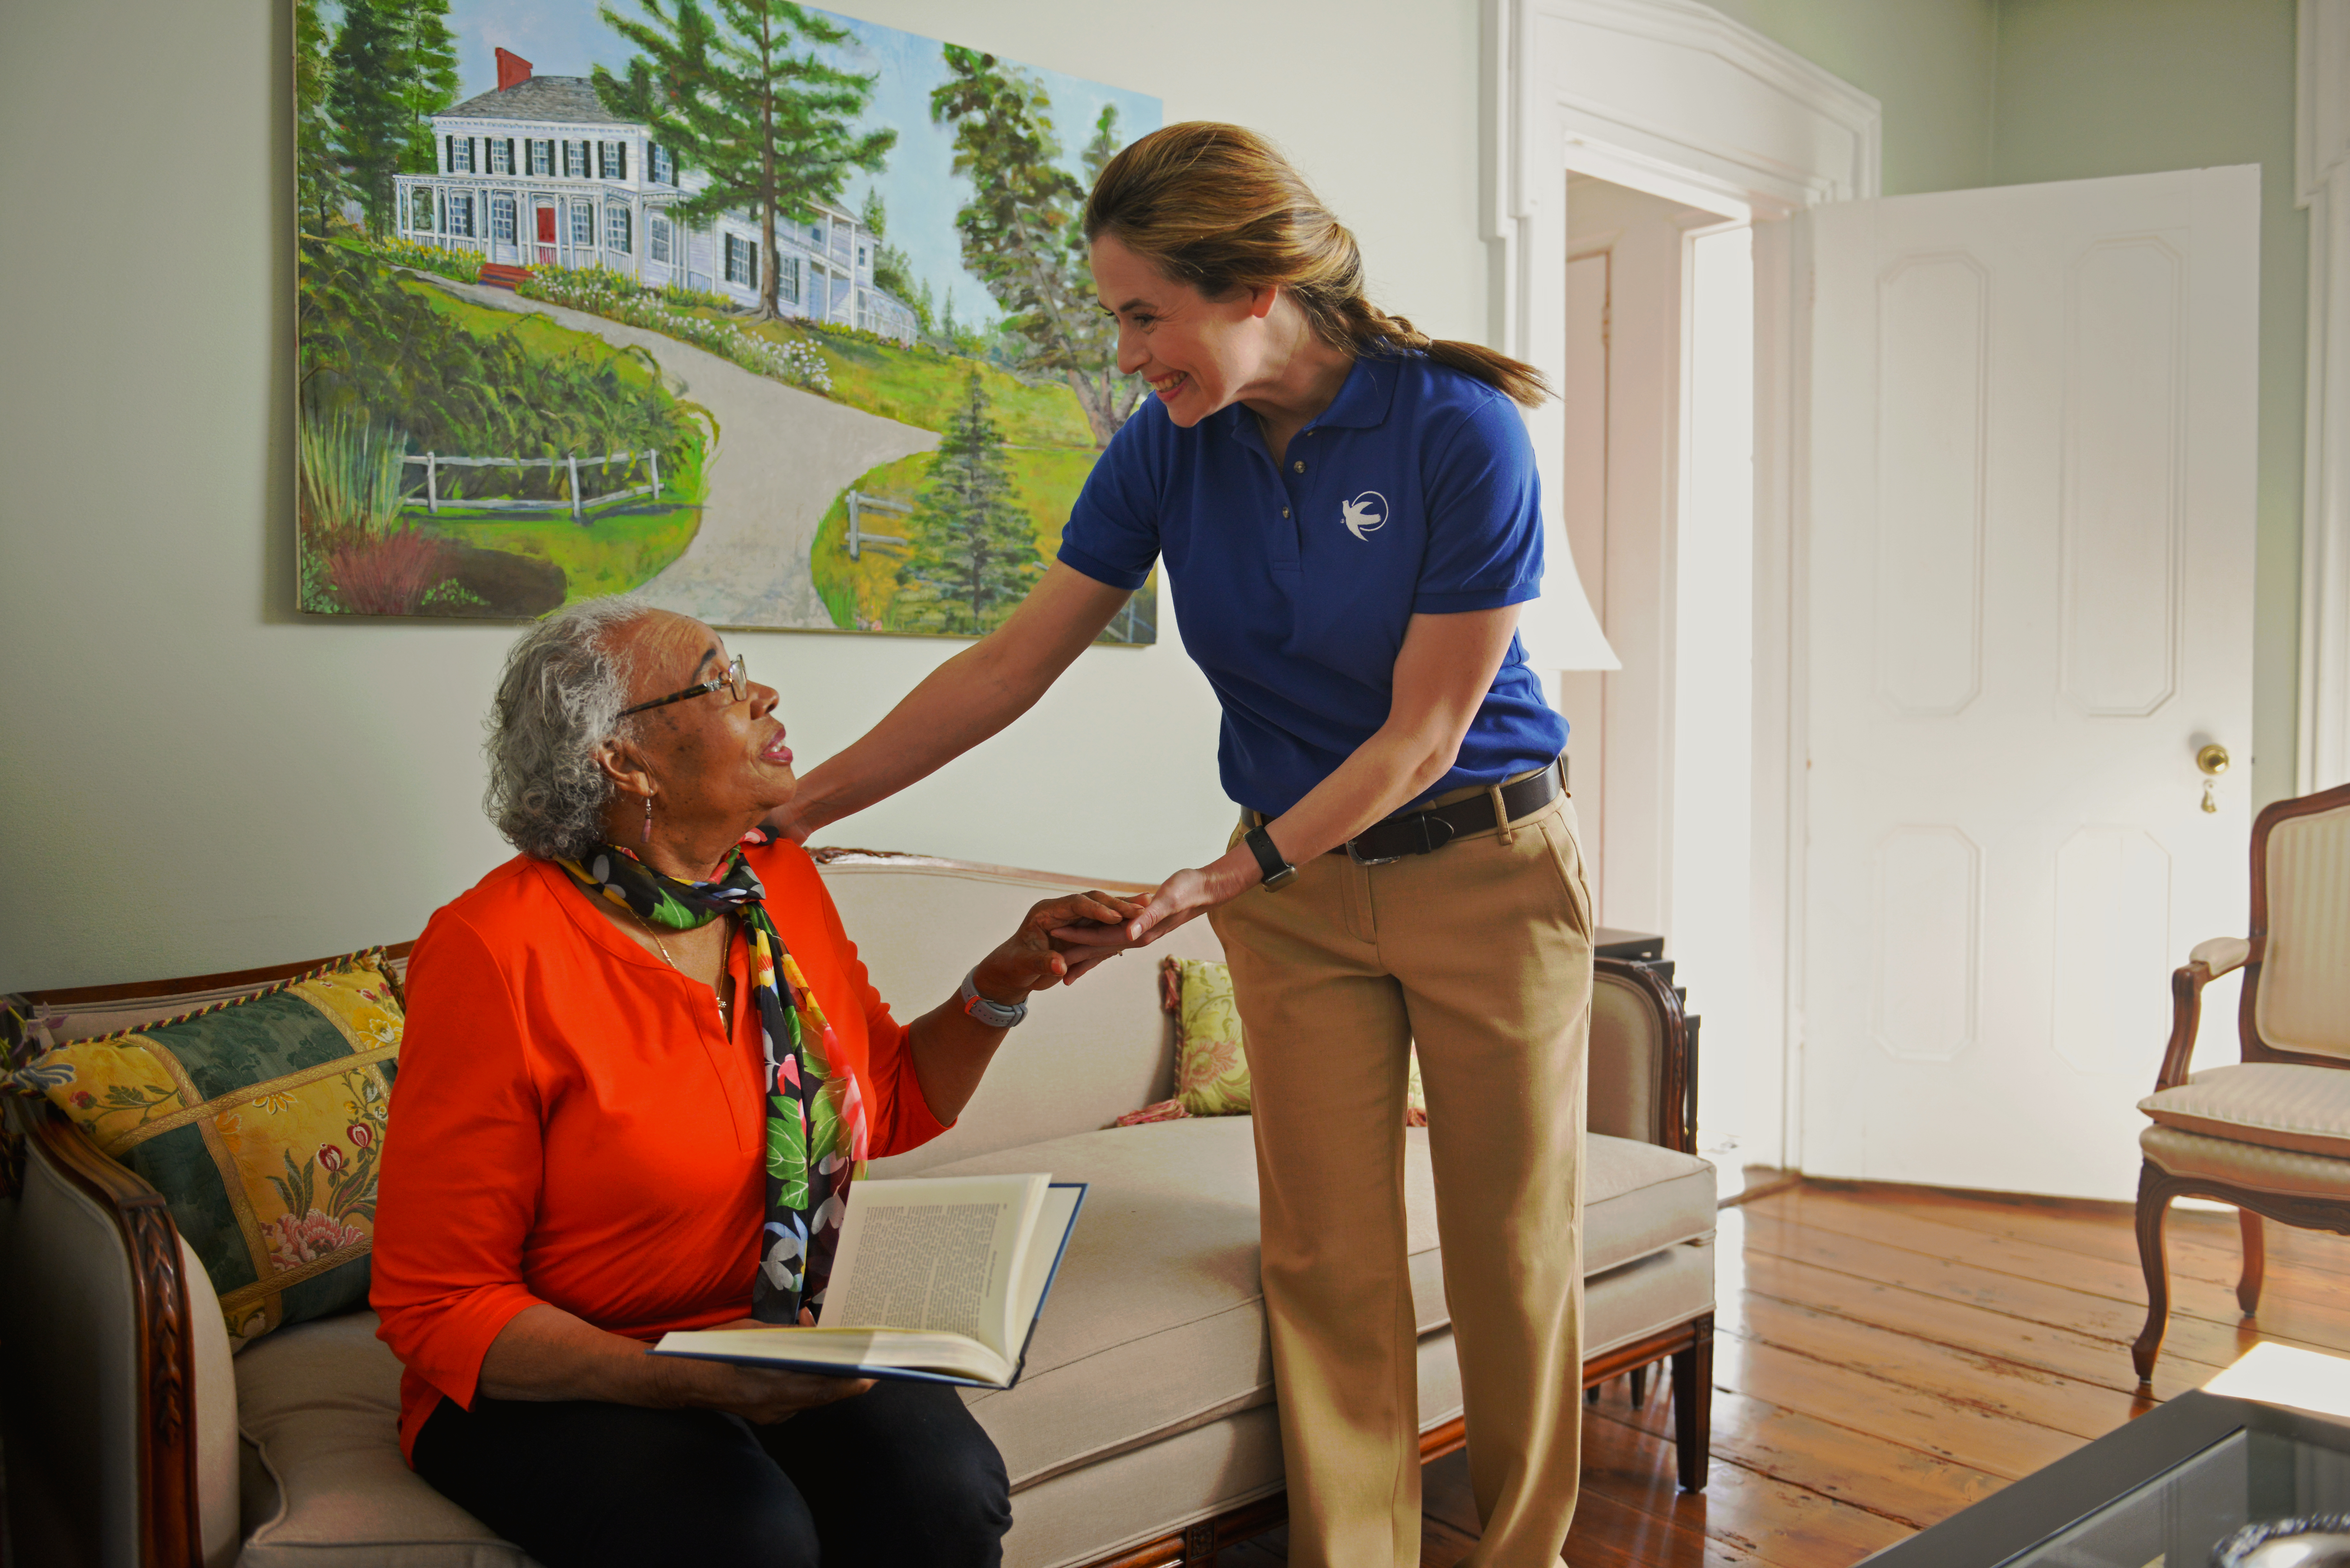 7 In Home Care Benefits for Seniors in the Burlington, VT Area Living with Anemia